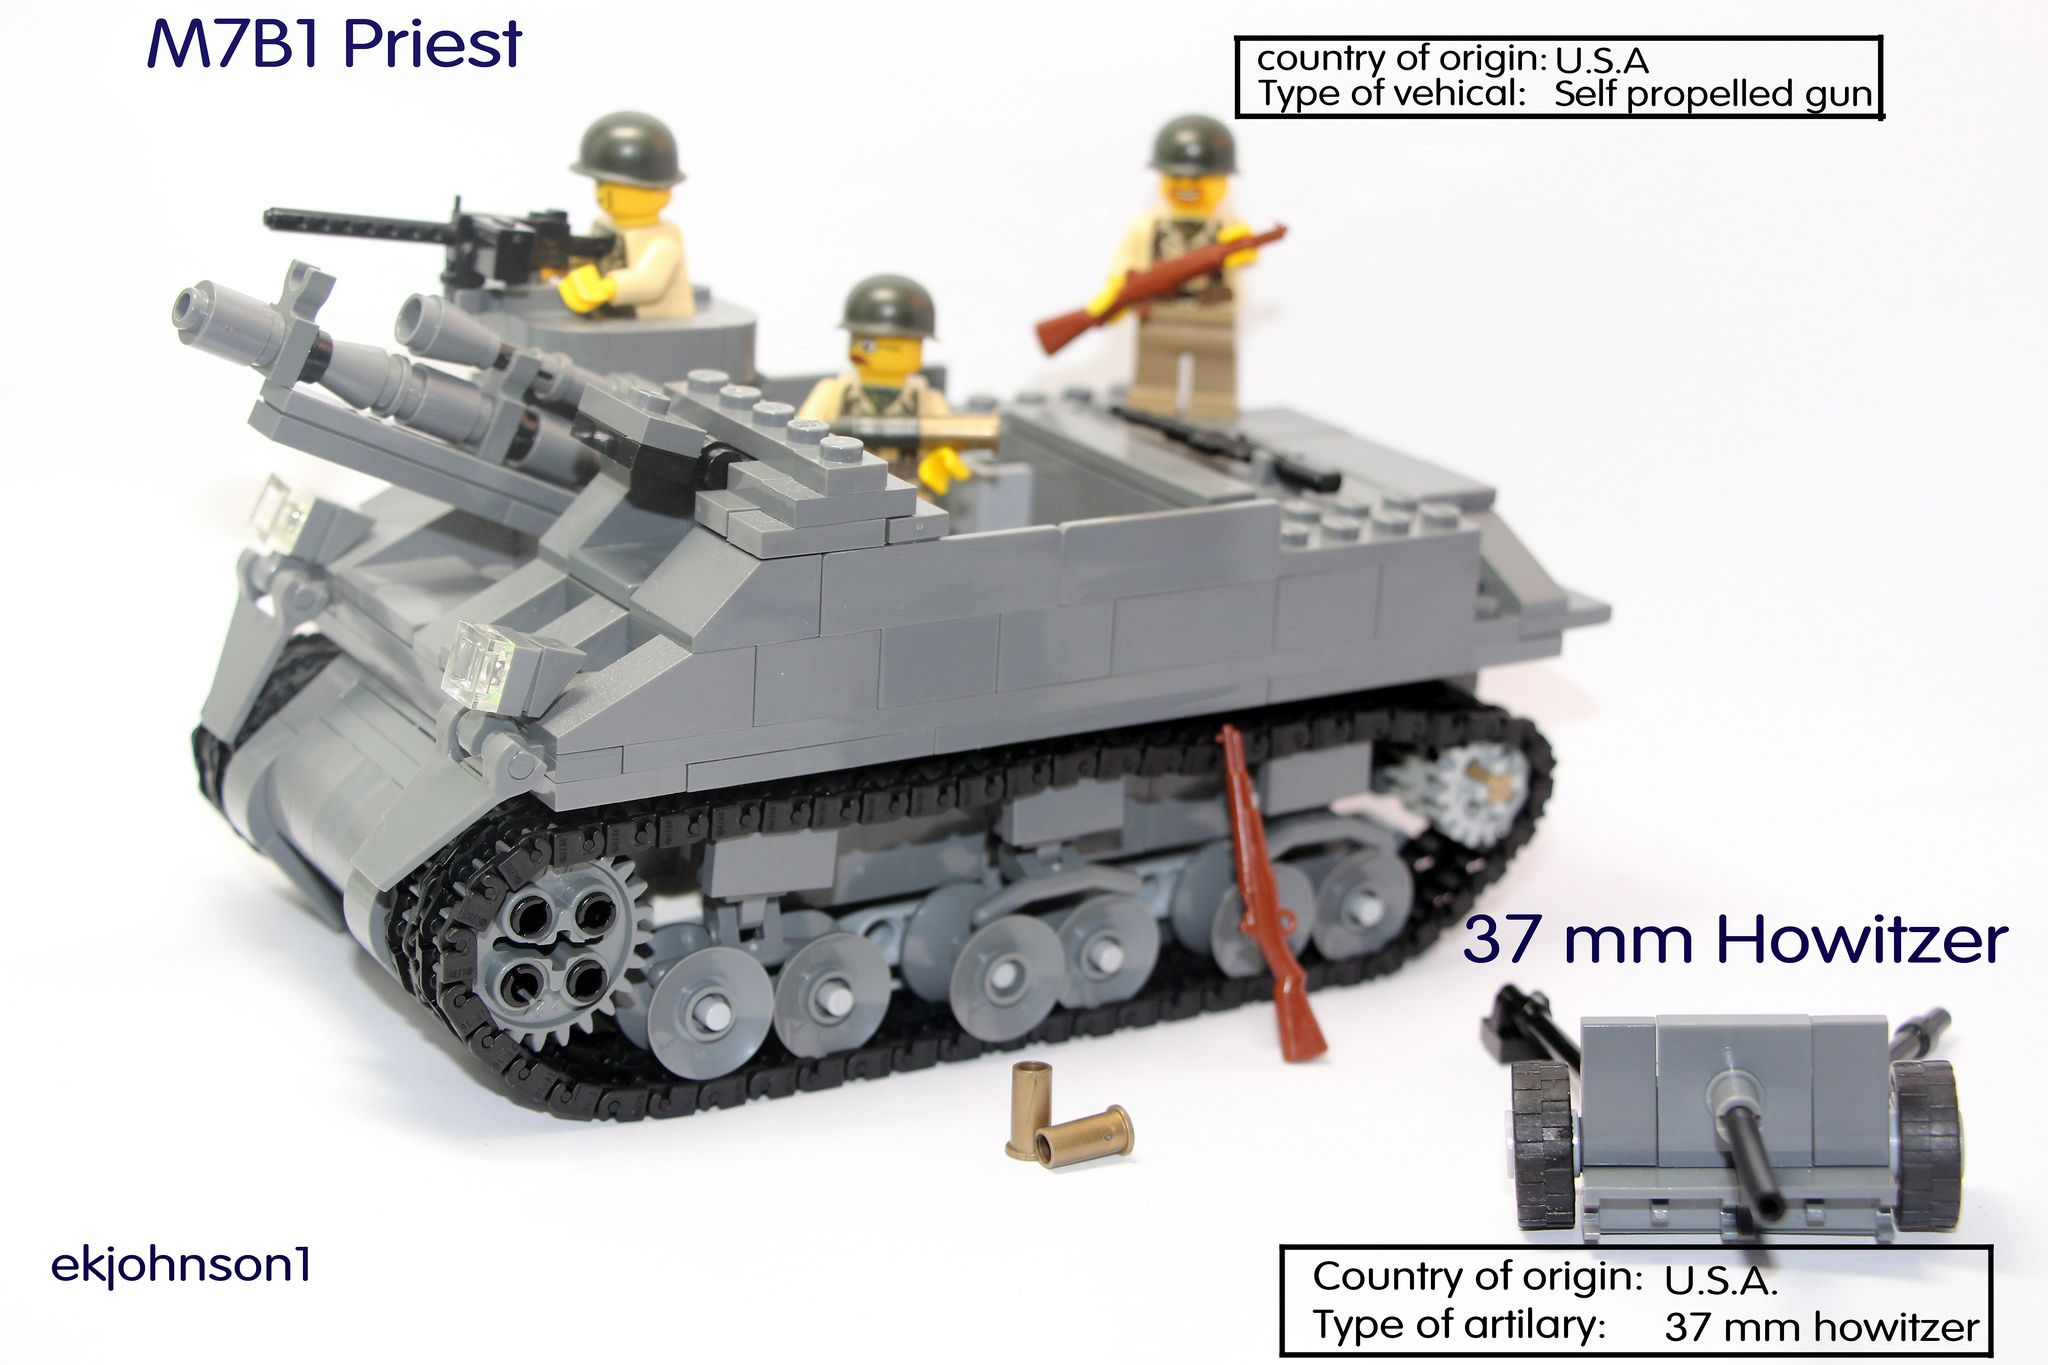 M7B1 Priest and 37 mm Howitzer | The priest is almost the sa… | Flickr